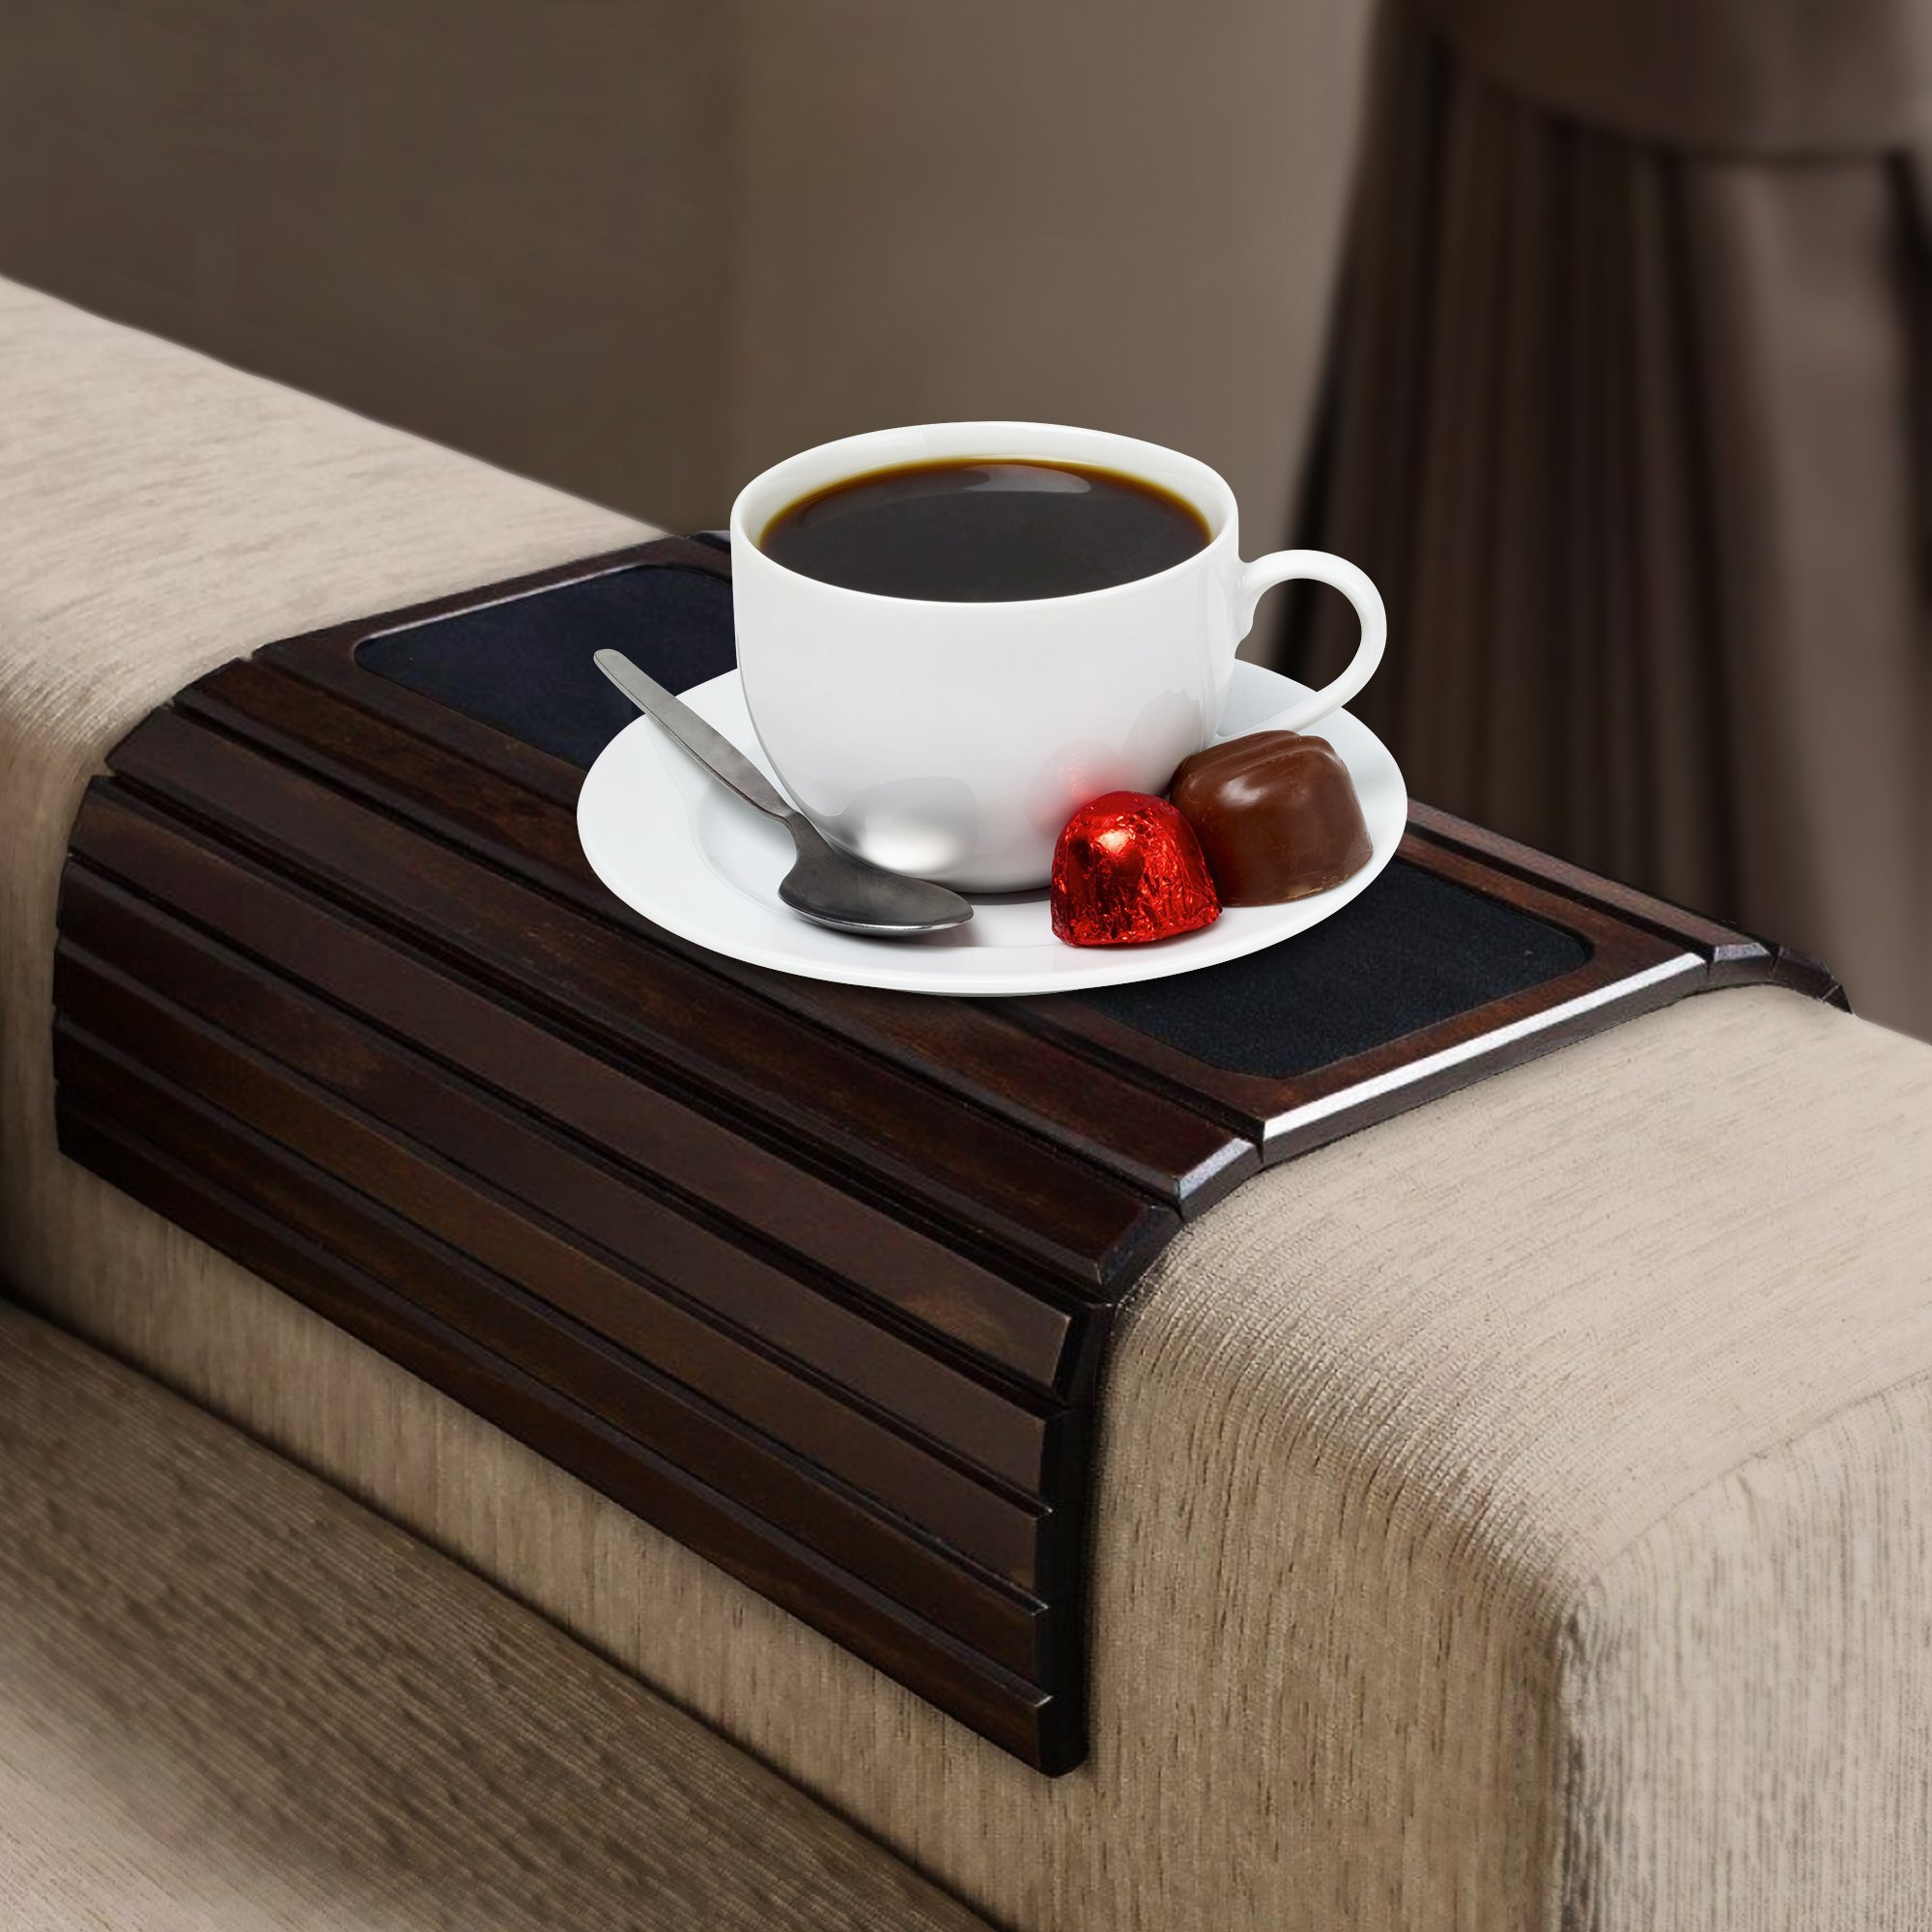 Hoovy Sofa Arm Tray Table: Wood Side Table Tray| Flexible, Portable & Folding Couch Drink Holder